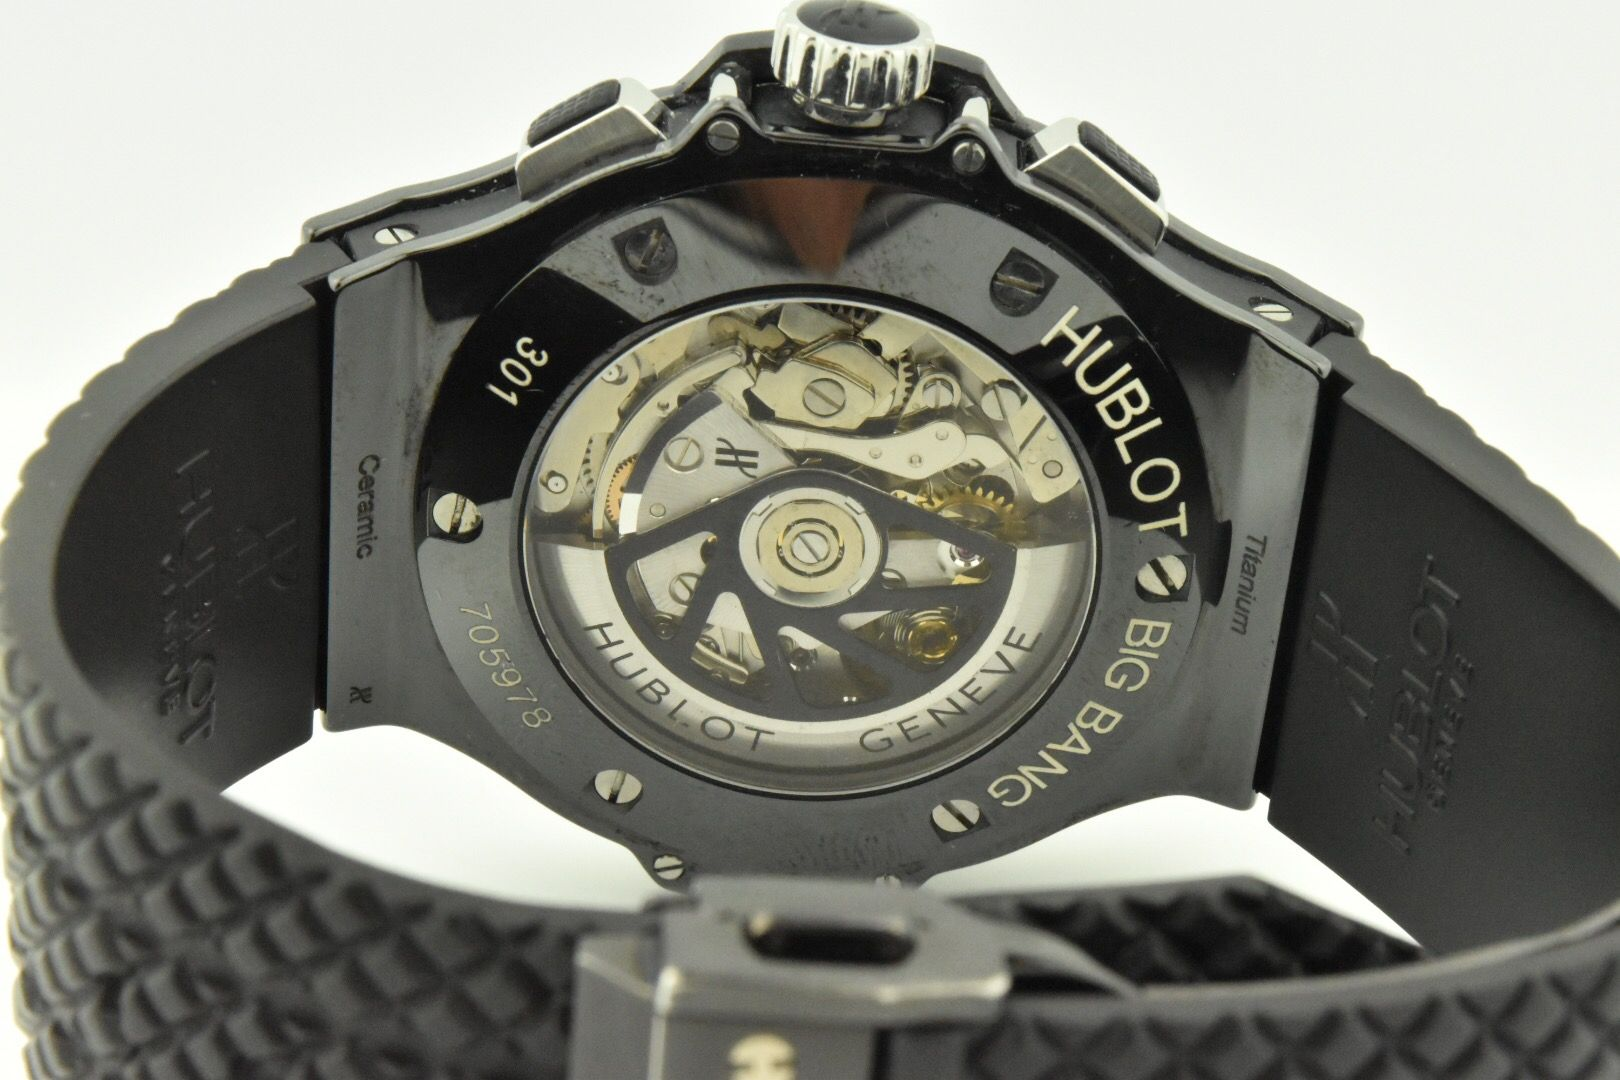 IMG 6081 - Hublot Big Bang Black Magic